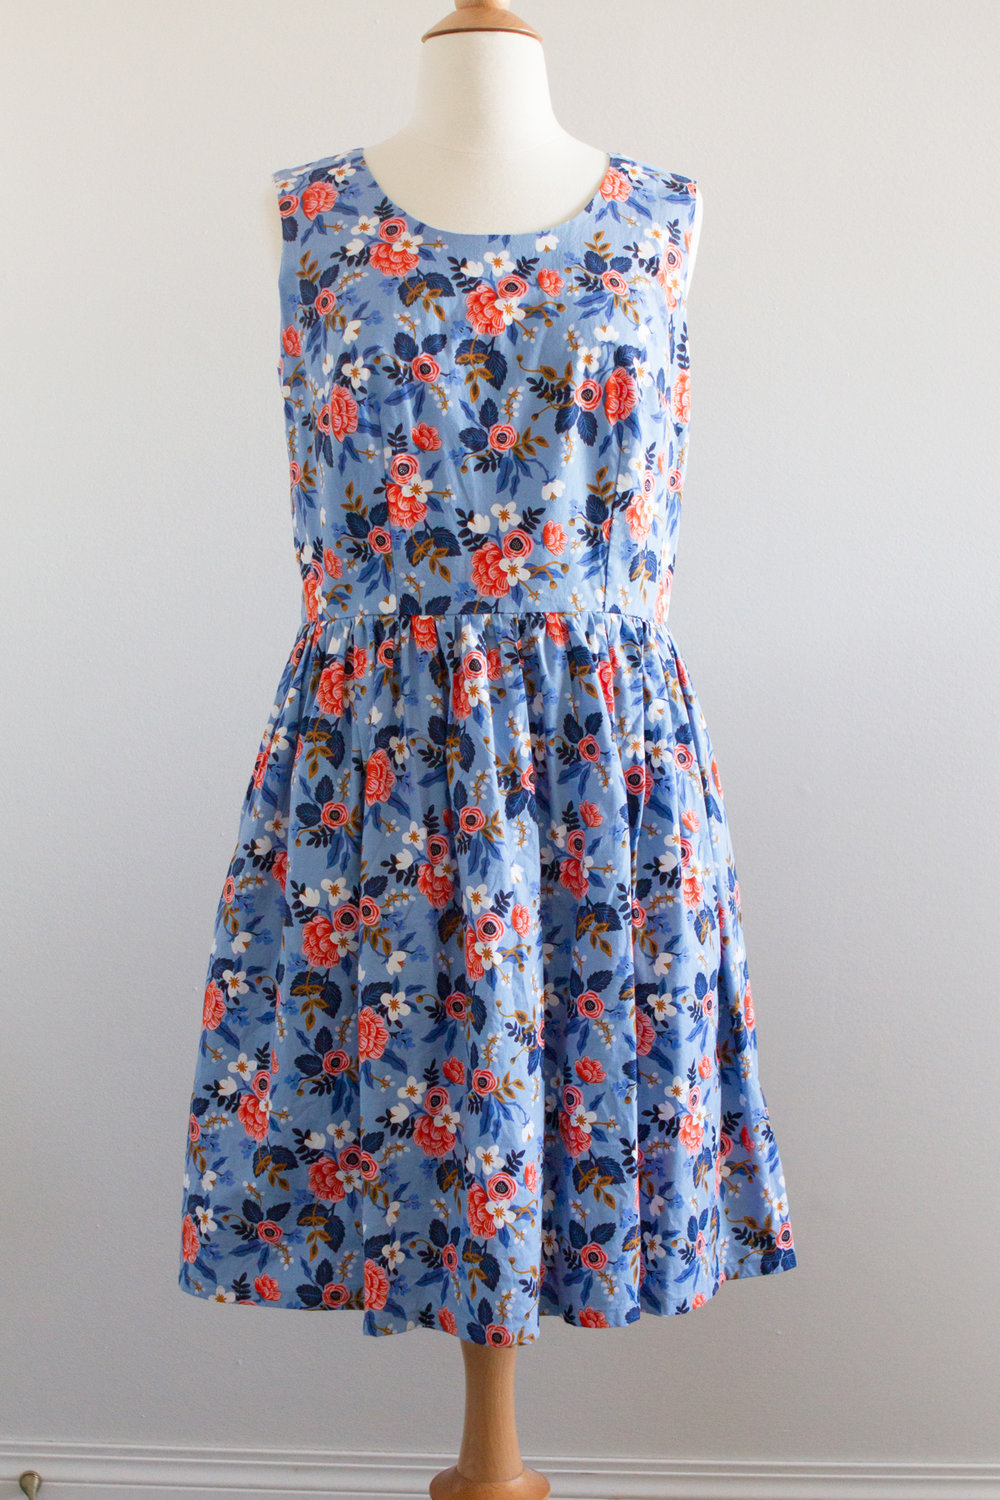 Dress made with Rifle Paper Co. fabric